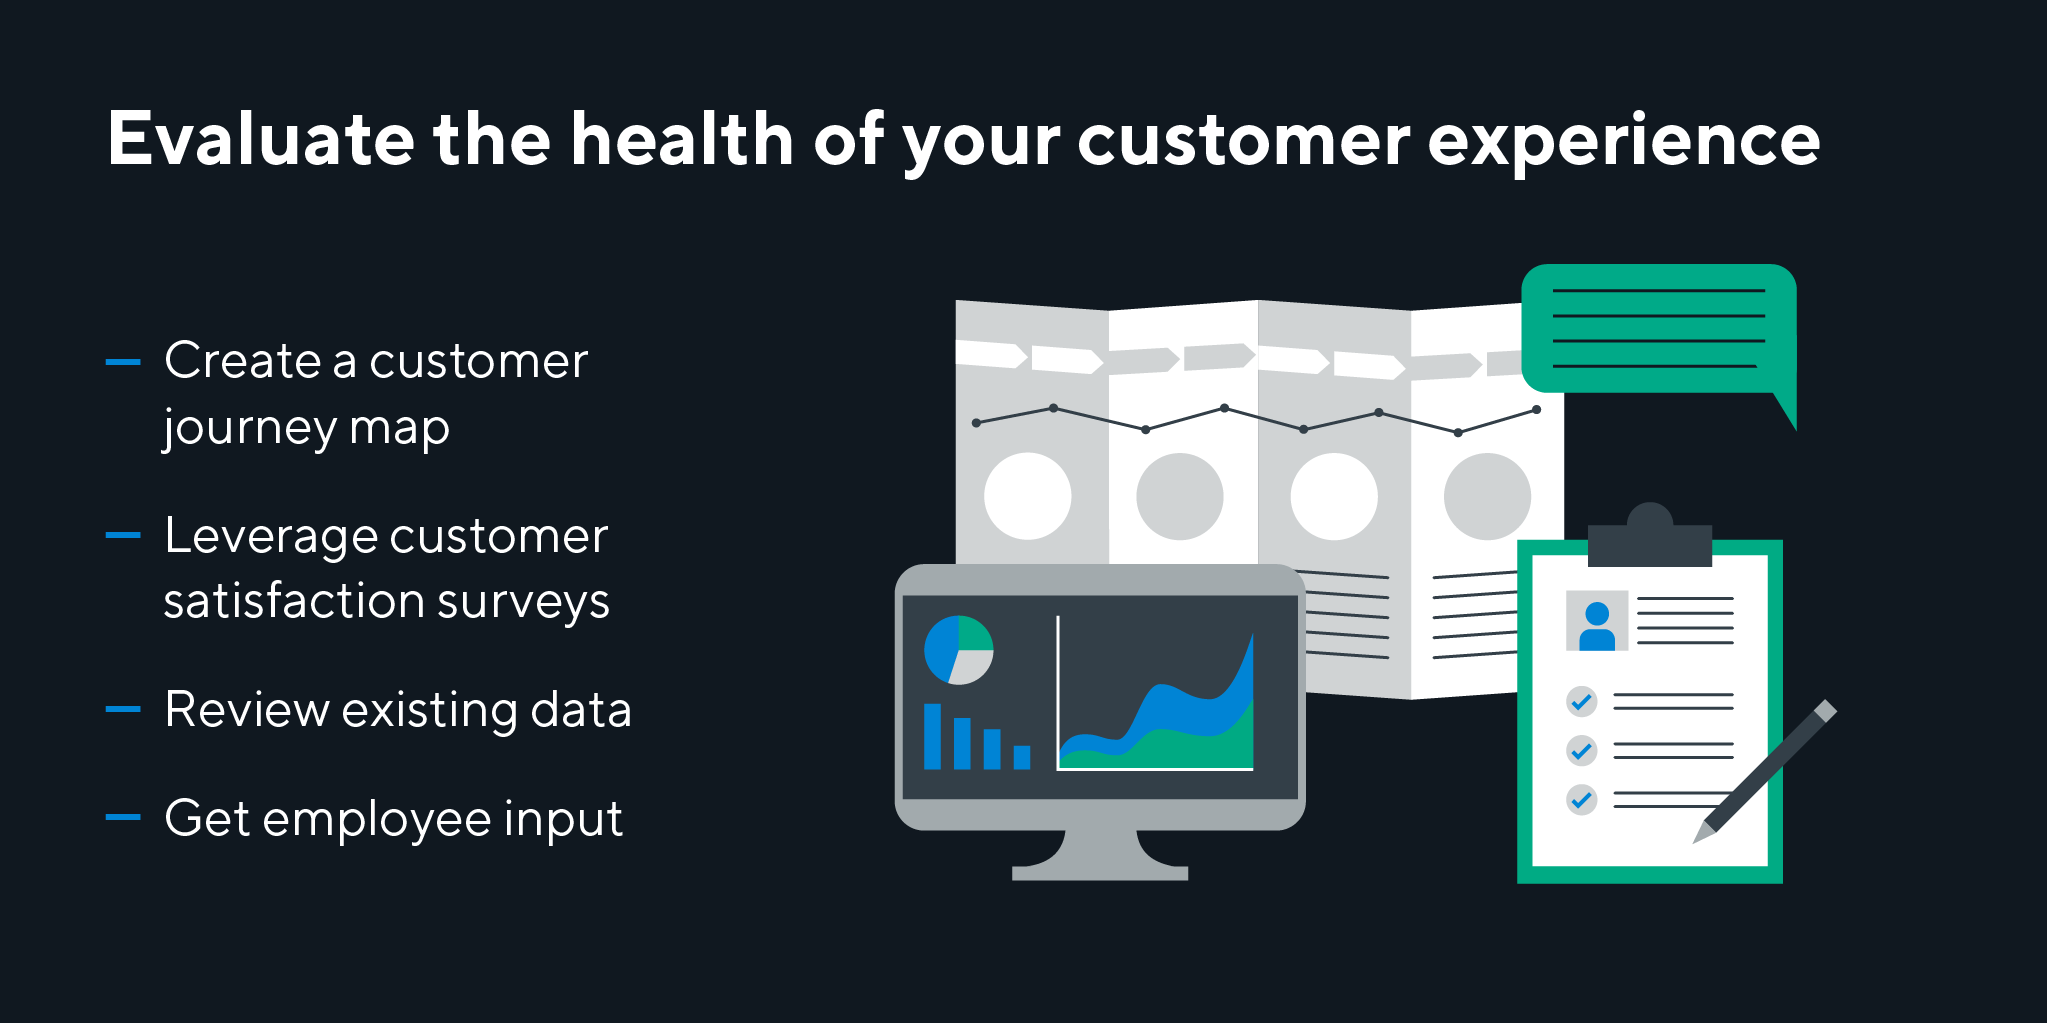 Illustration and text explaining how to evaluate the health of your customer experience